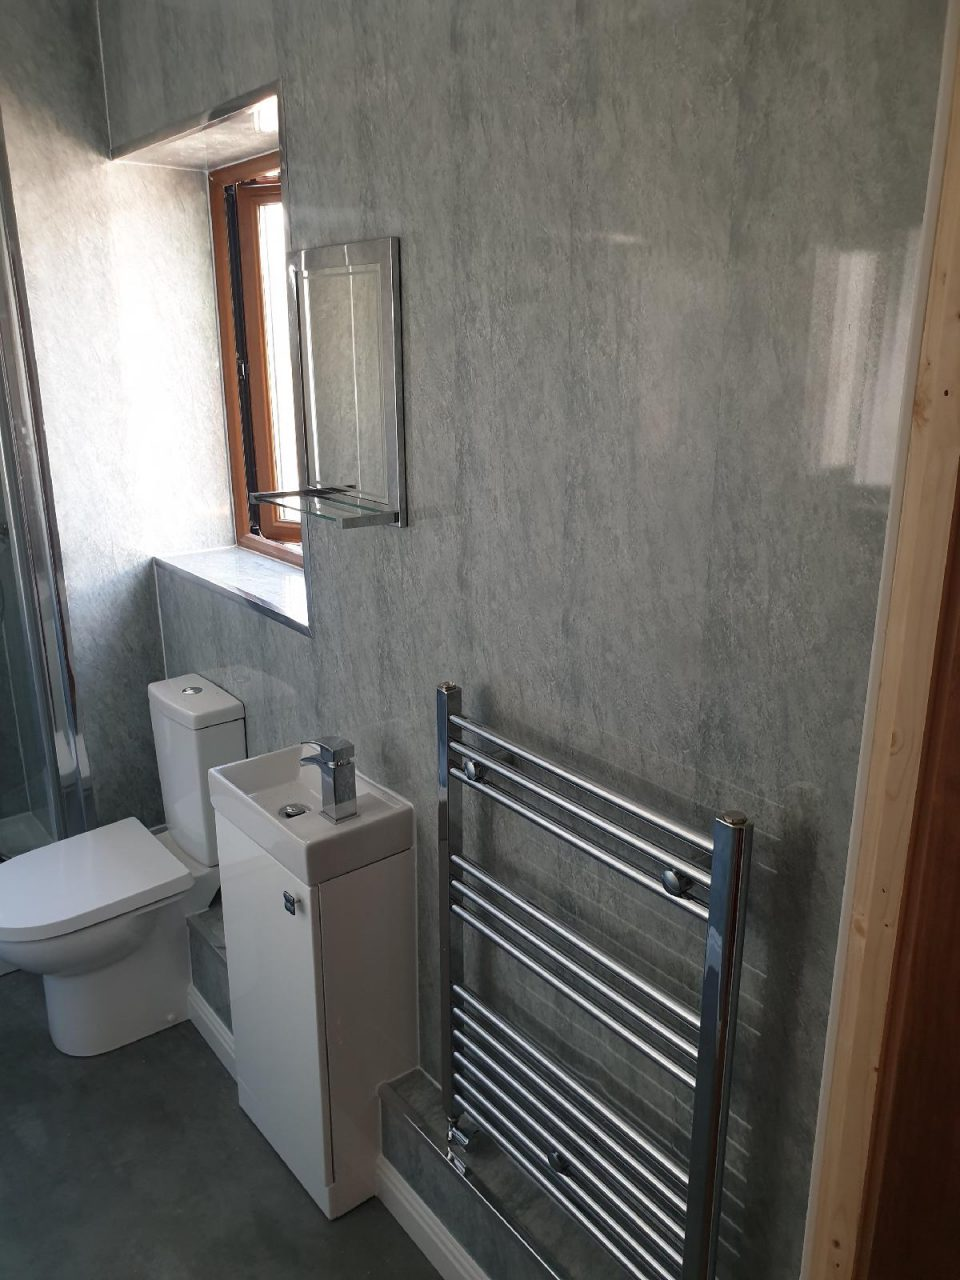 New Bathroom Mrs Wootton in Birmingham Ensuite with chrome radiator